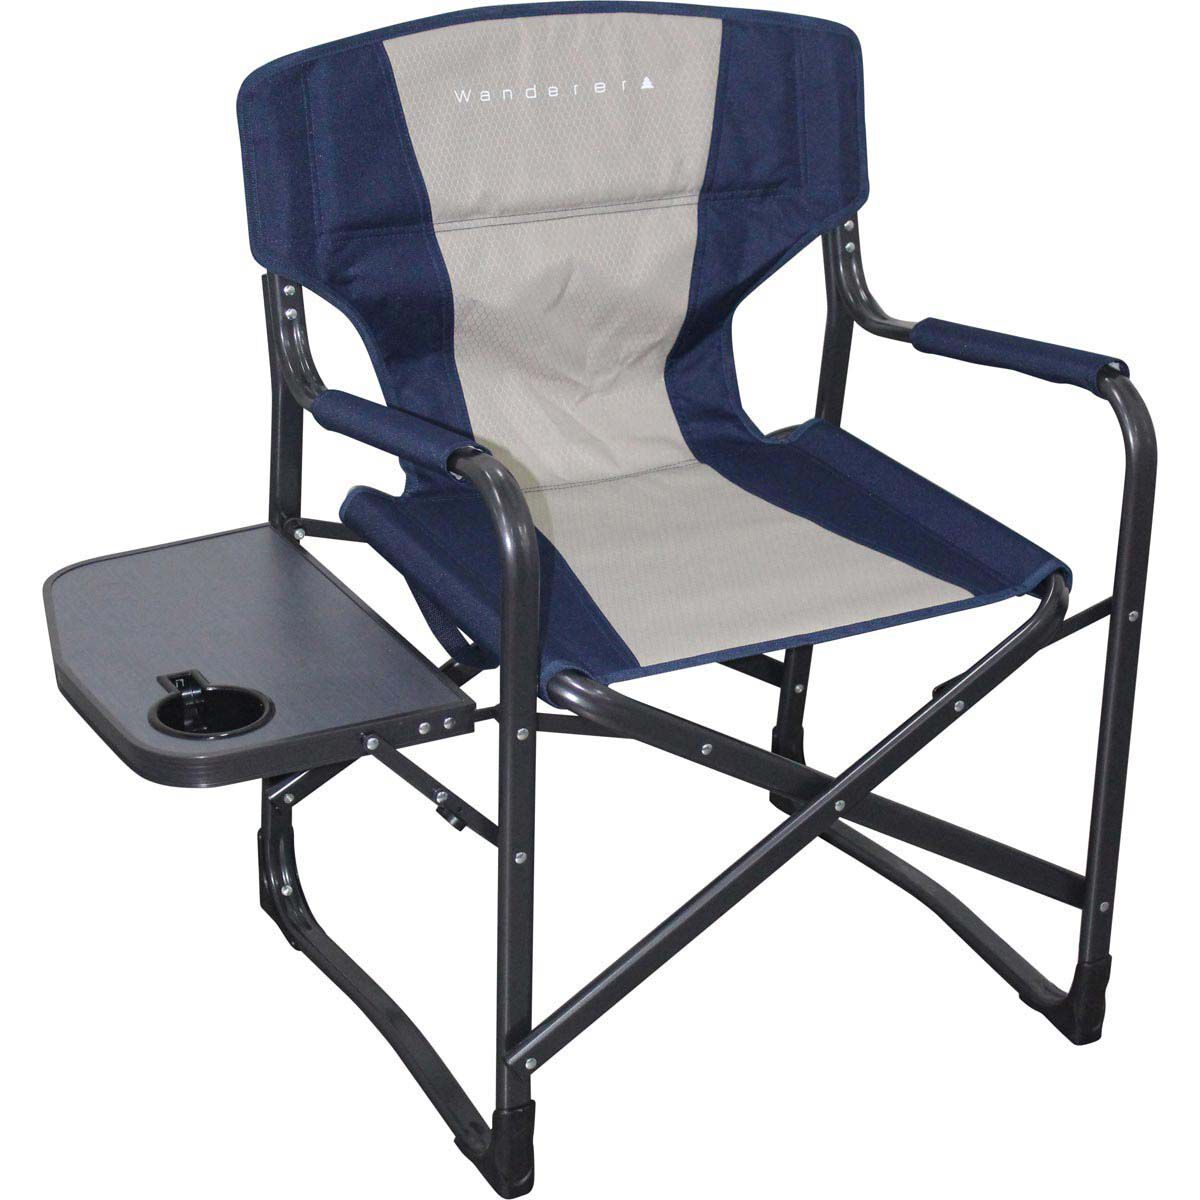 fishing chair spare parts comfy lawn chairs beach buy online bcf australia directors with side table hi res